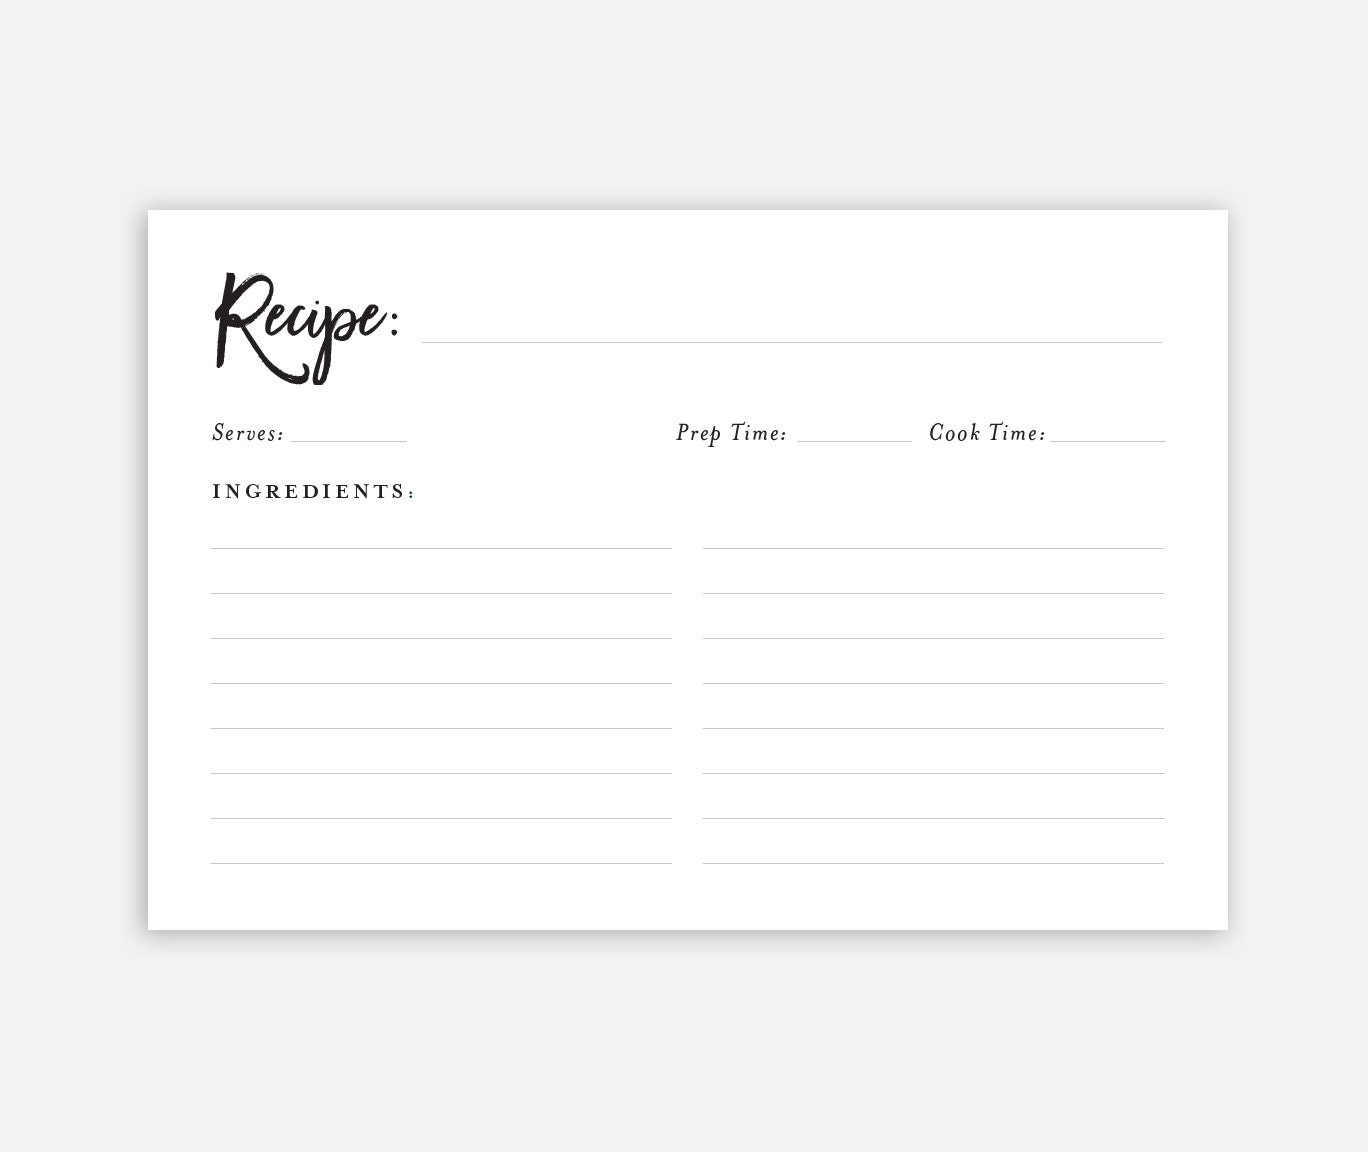 It's just a photo of Gargantuan Printable Recipe Card